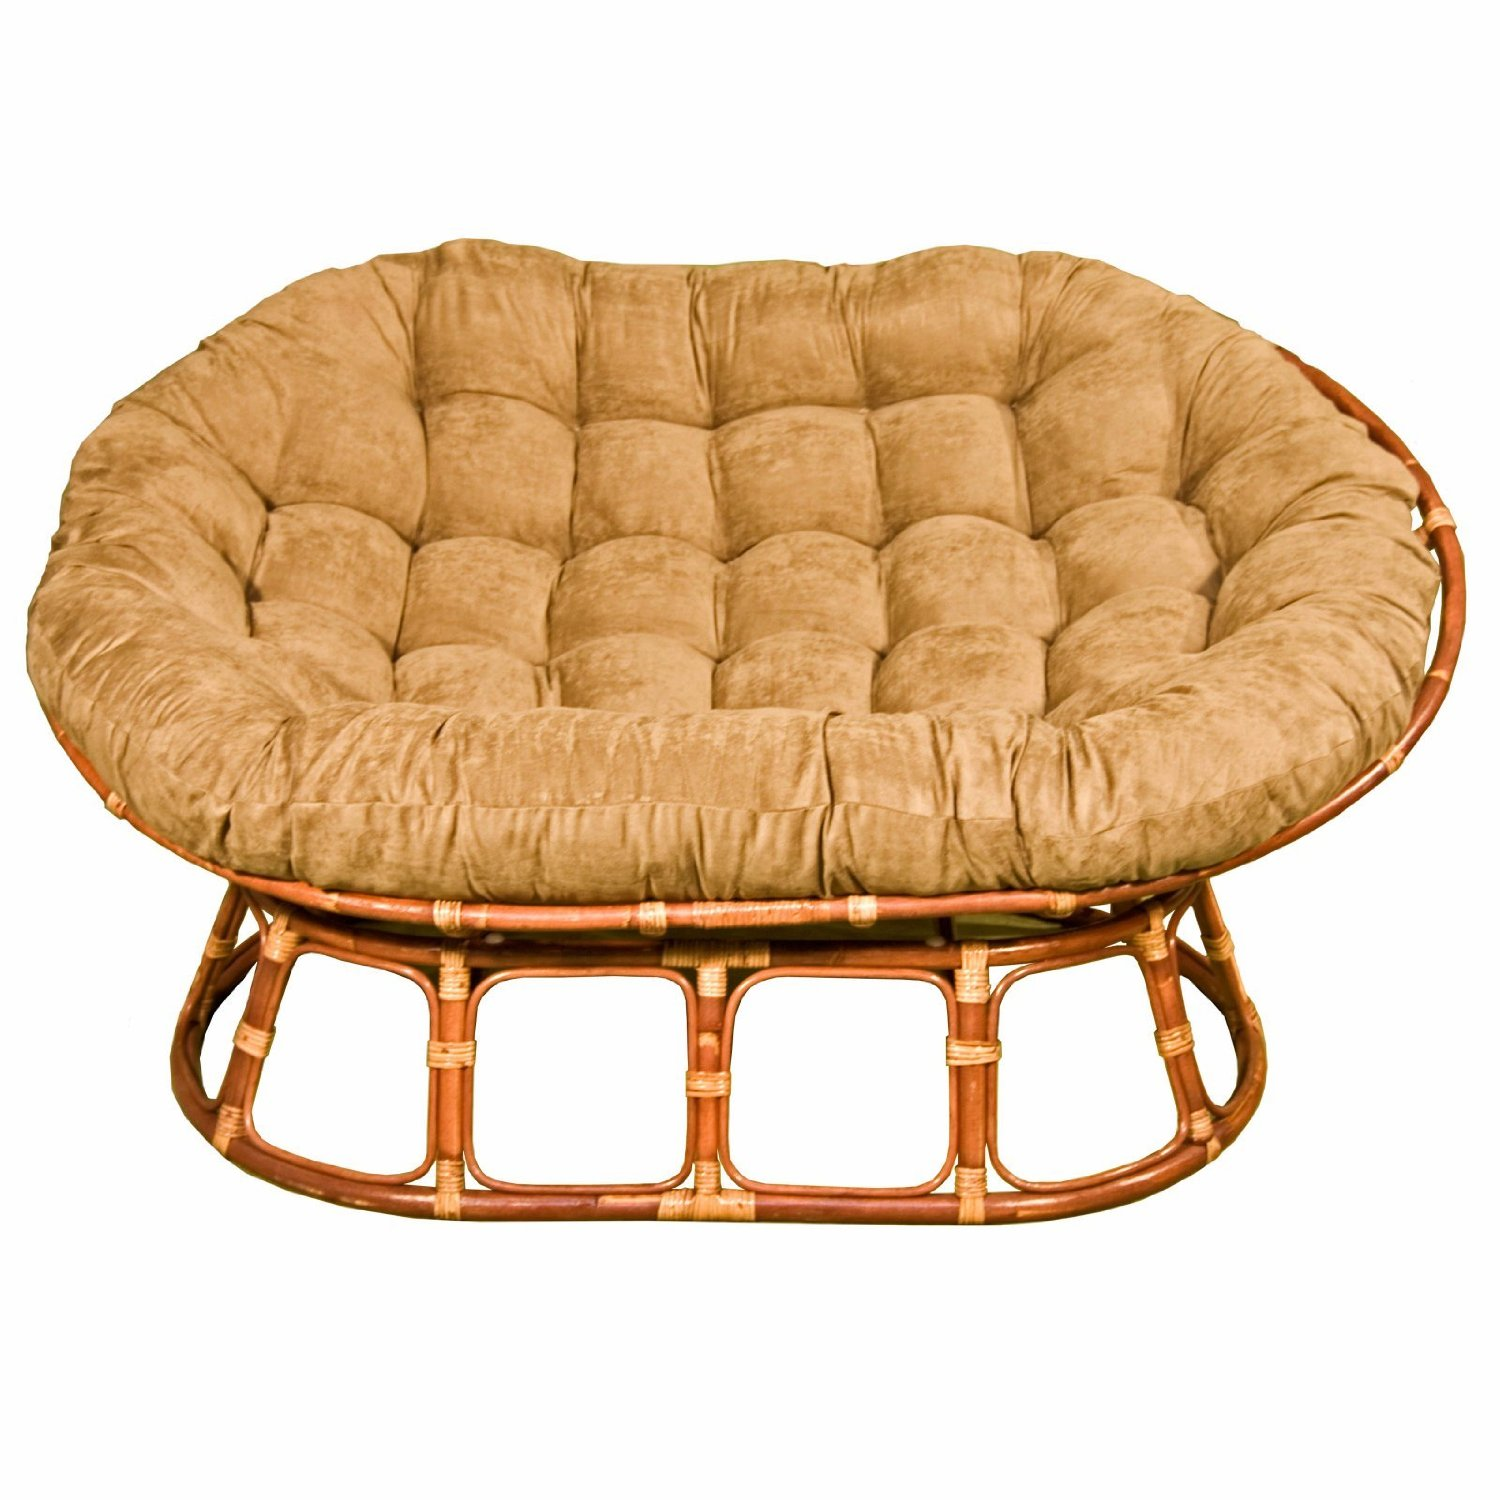 Swivel Rocker Cushion | Rattan Swivel Rocking Chair | Rattan Swivel Rocker